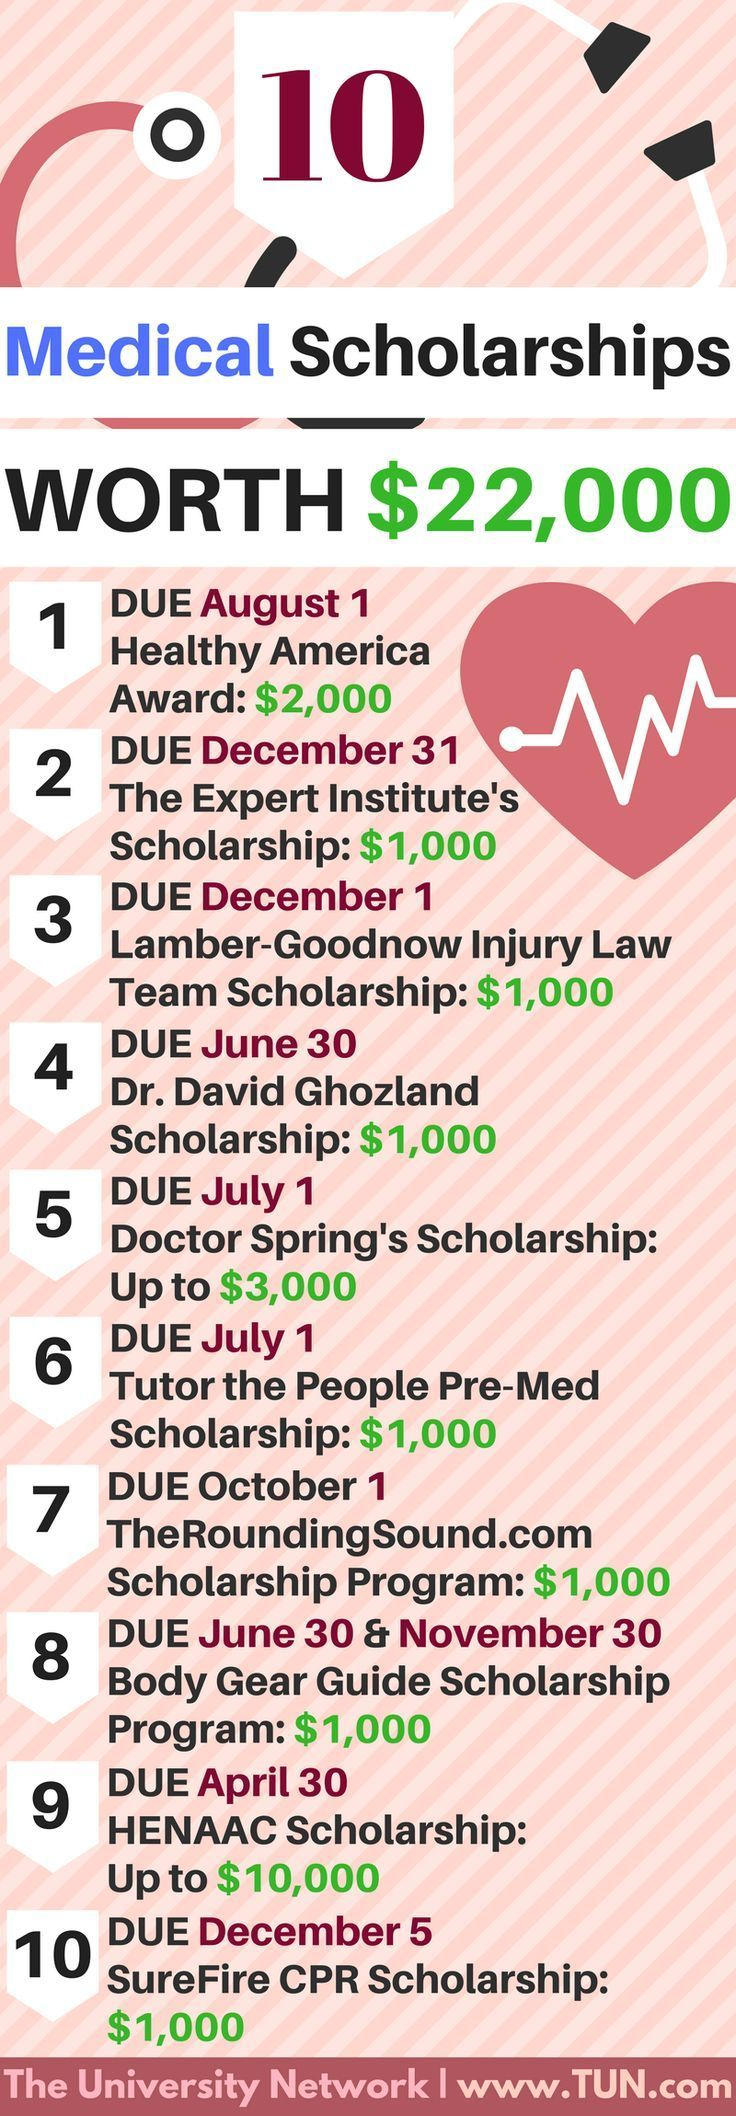 Each of these scholarships are targeted towards medical students or deal with medical topics!